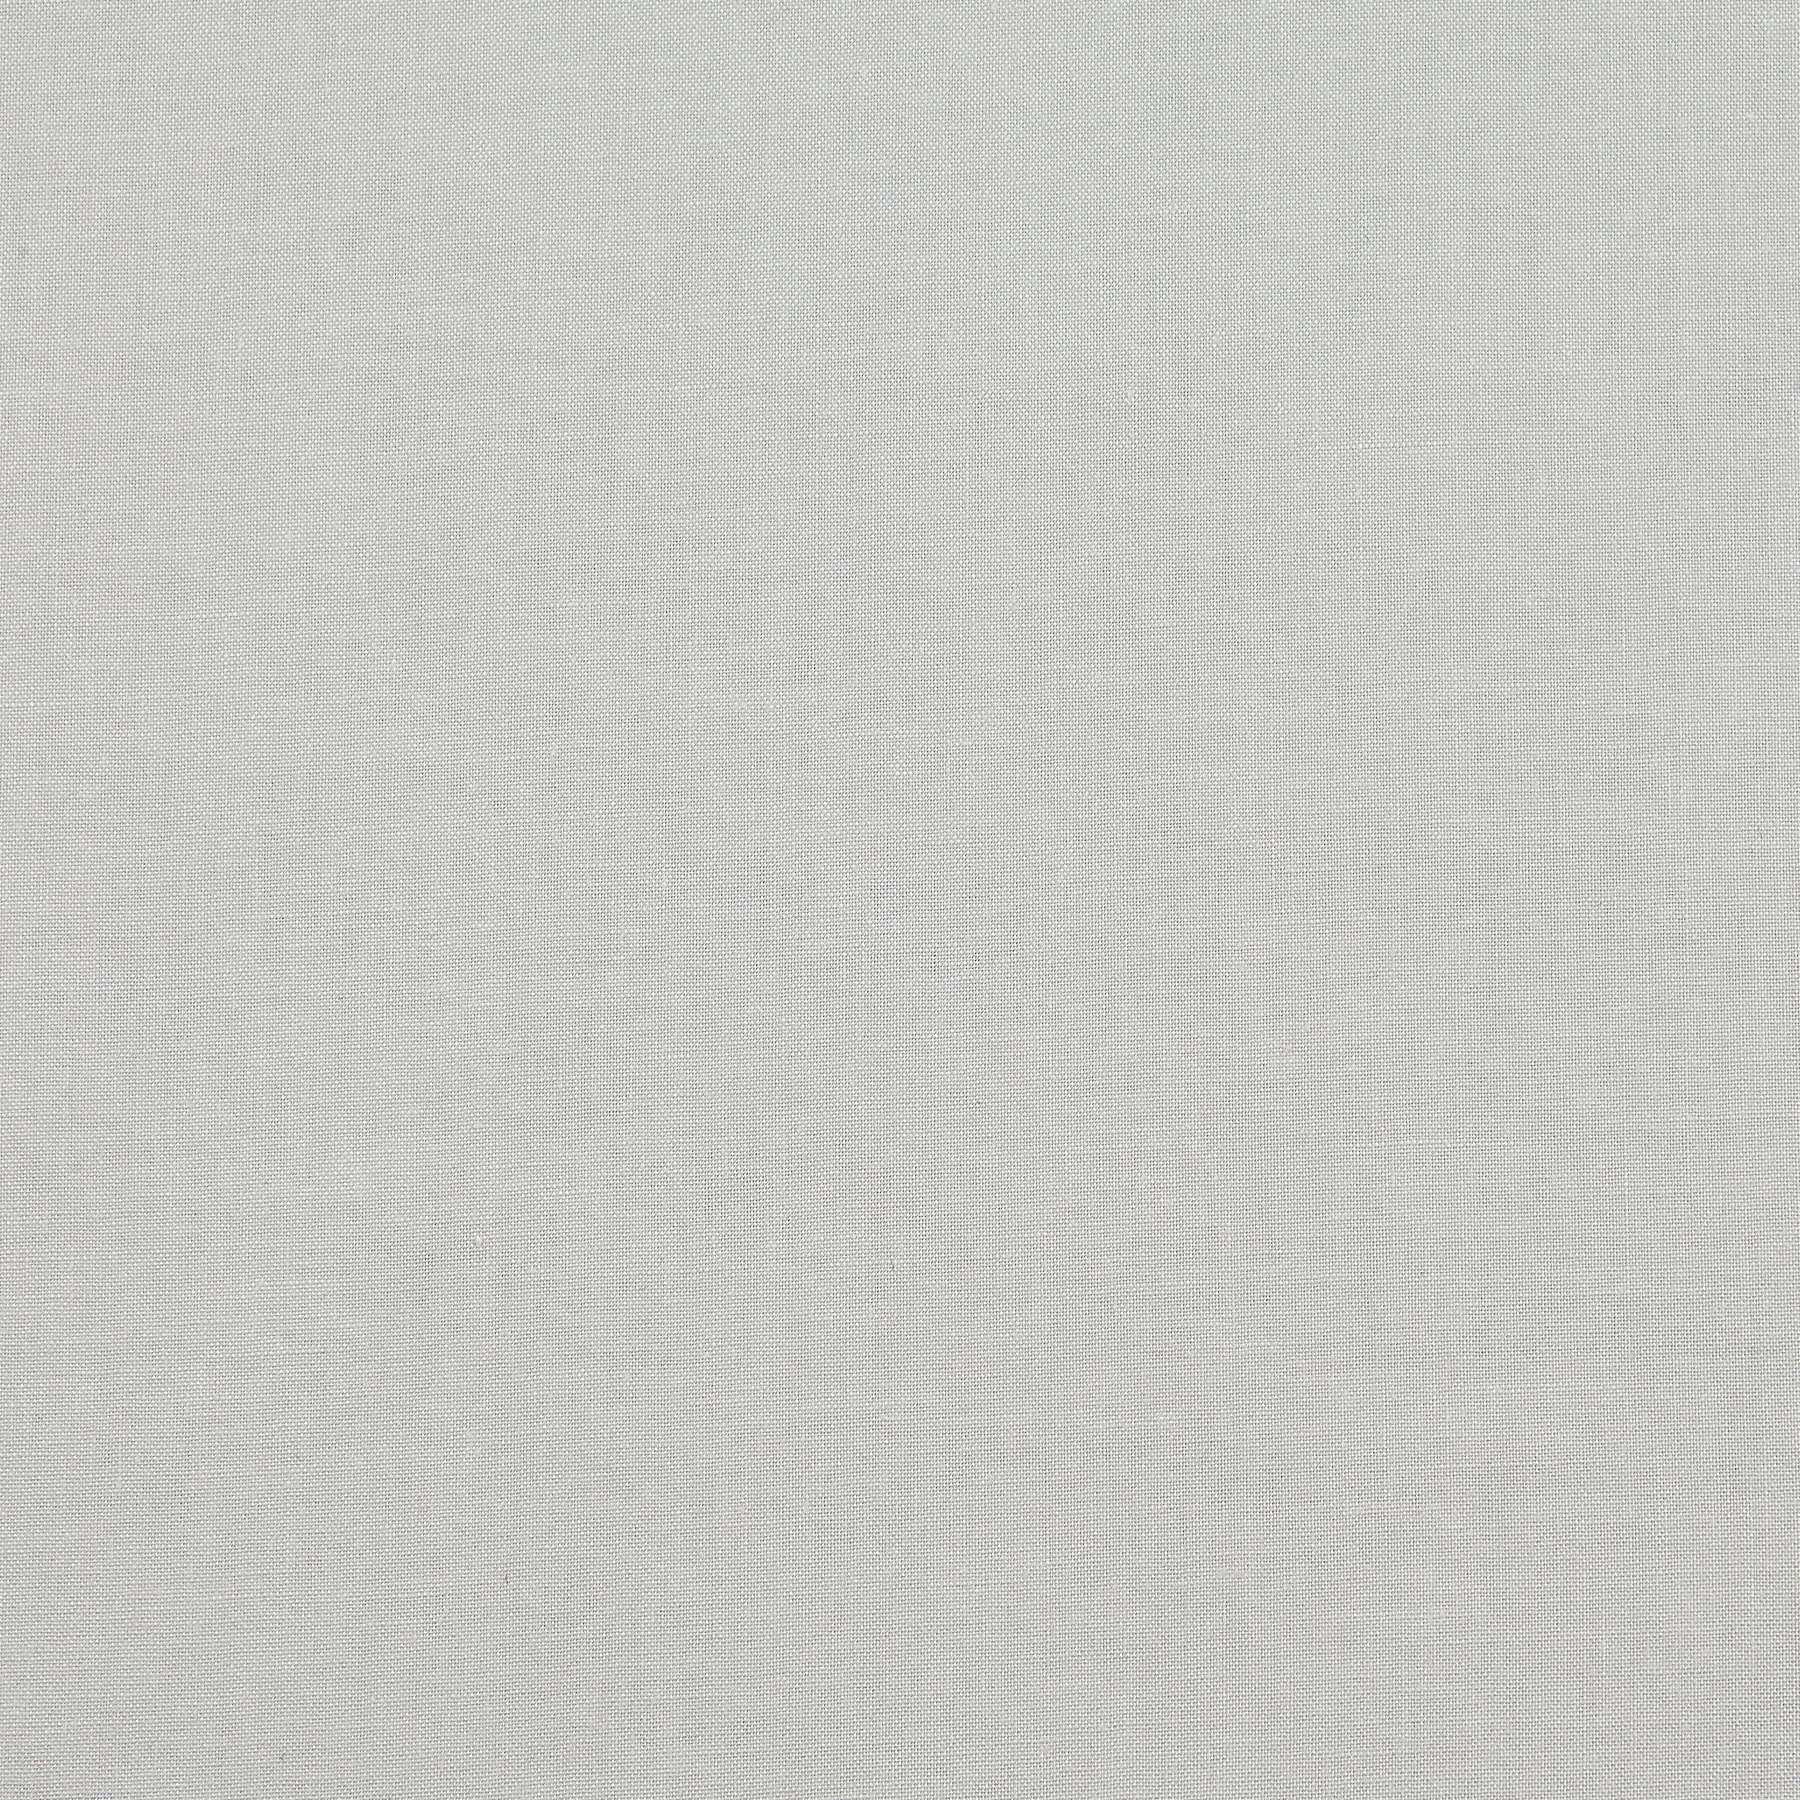 Michael Miller Cotton Couture Broadcloth Soft White Fabric